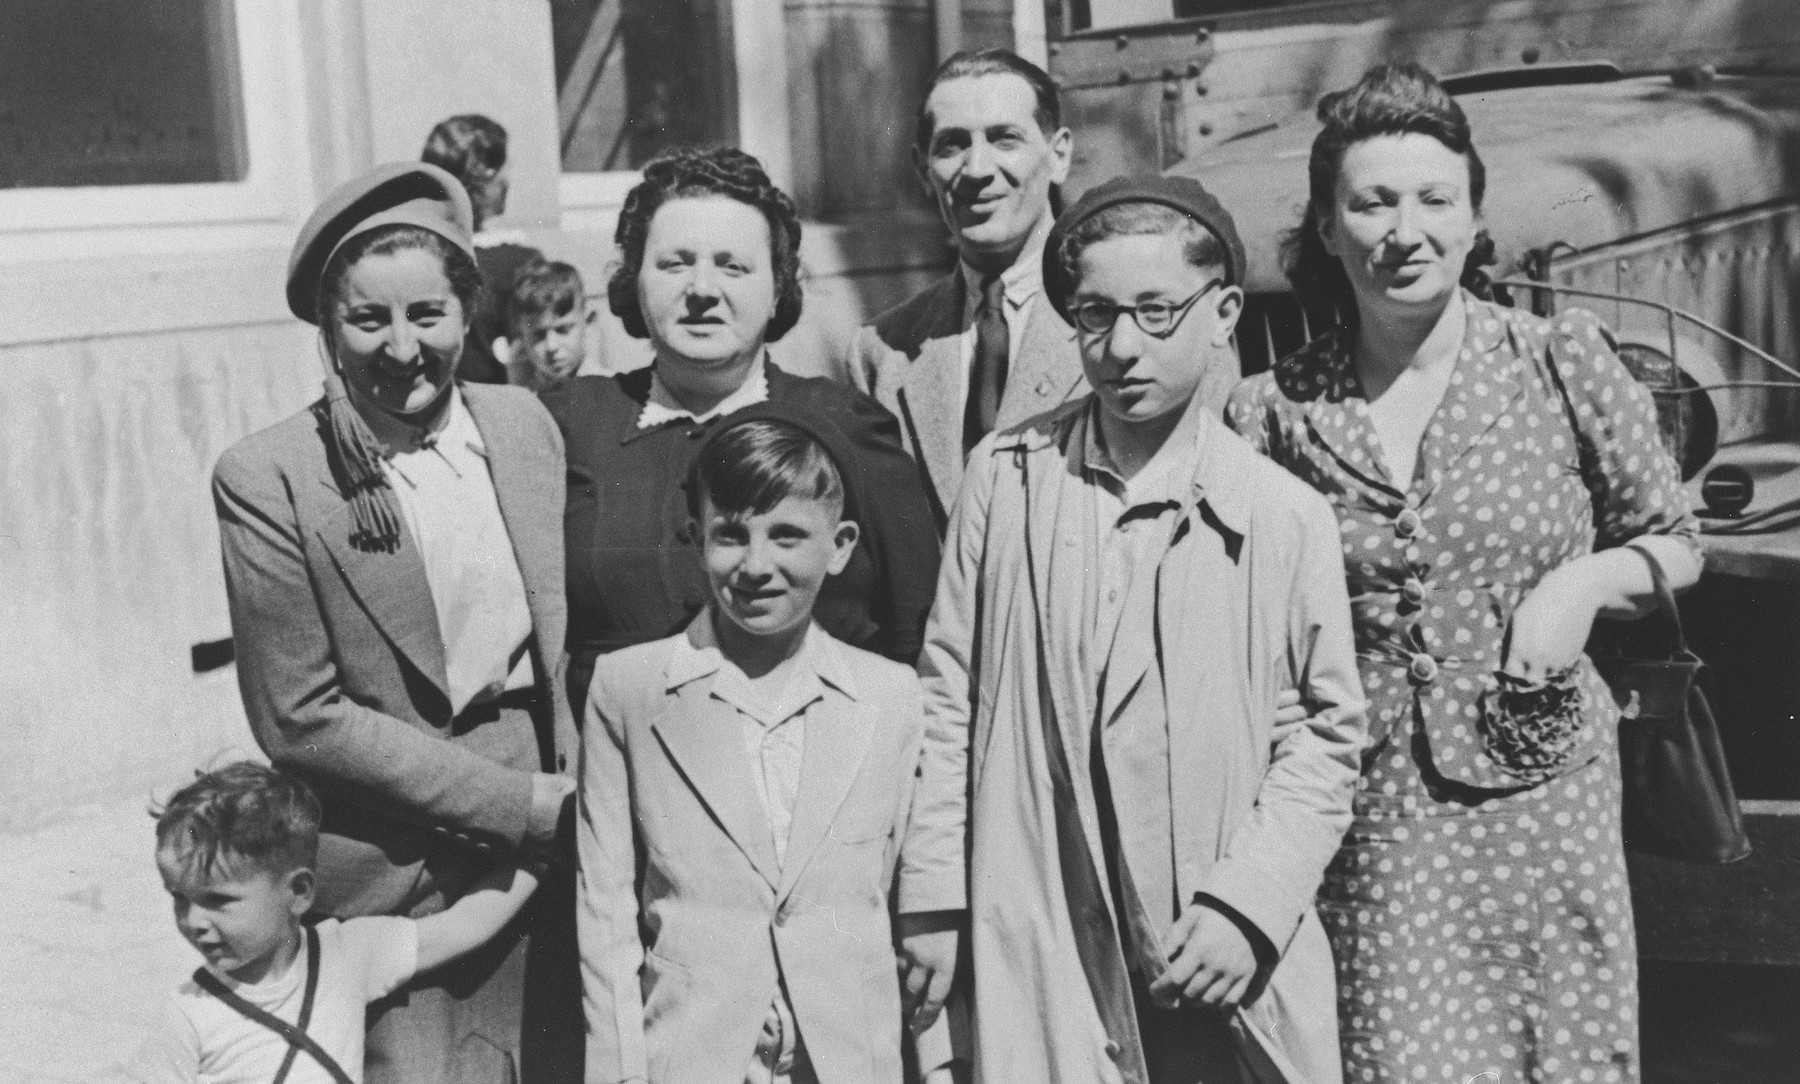 Two Dutch Jewish brothers pose with the woman who served as their surrogate mother in Theresienstadt and their cousins who cared for them after the war.  Standing in front are Charlie and Leo Sigmann.  Standing in back from left to right are Malka Weinman and her nephew (name unknown), Pepa and Yosef Berger, and Regina Felsen van Chelder.